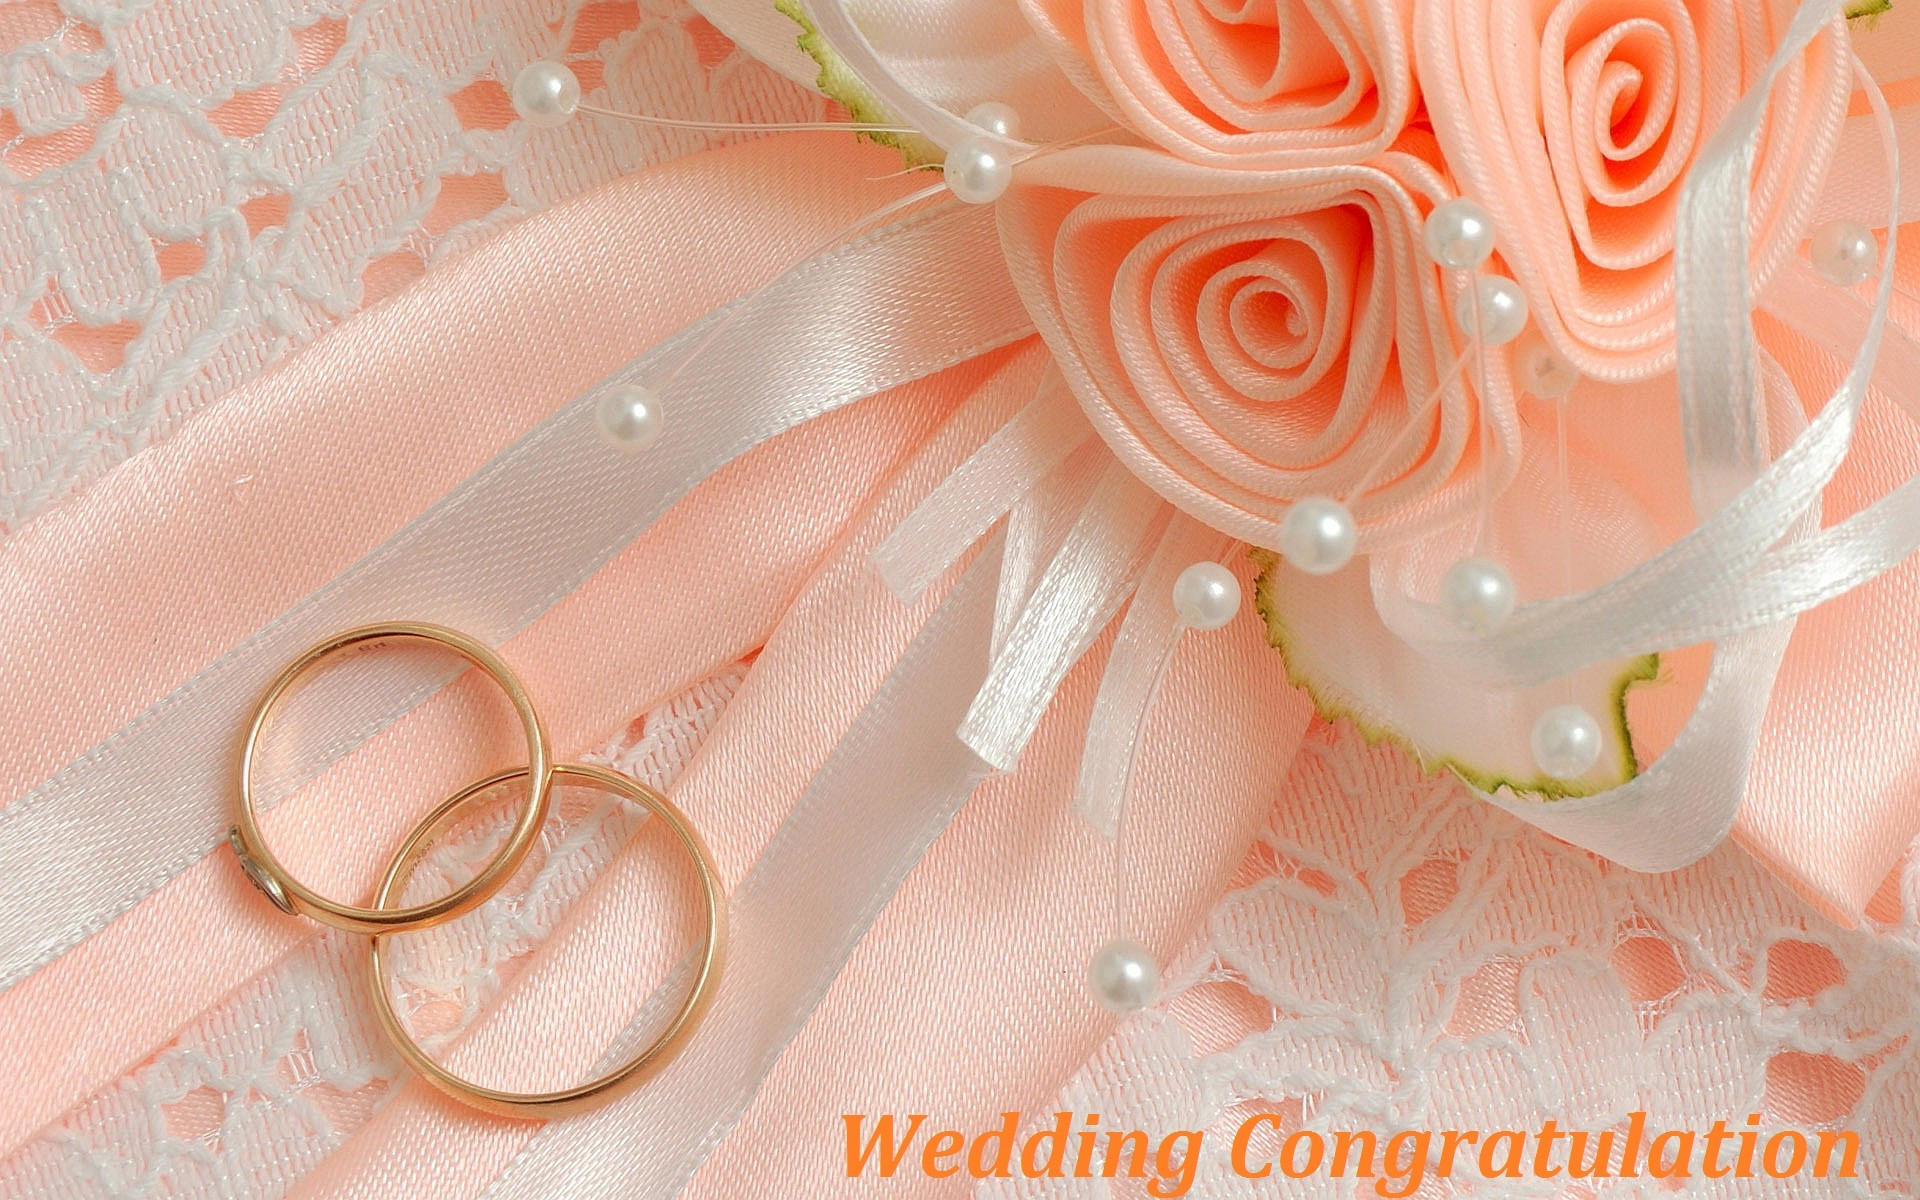 Res: 1920x1200, wedding wishes and congratulation